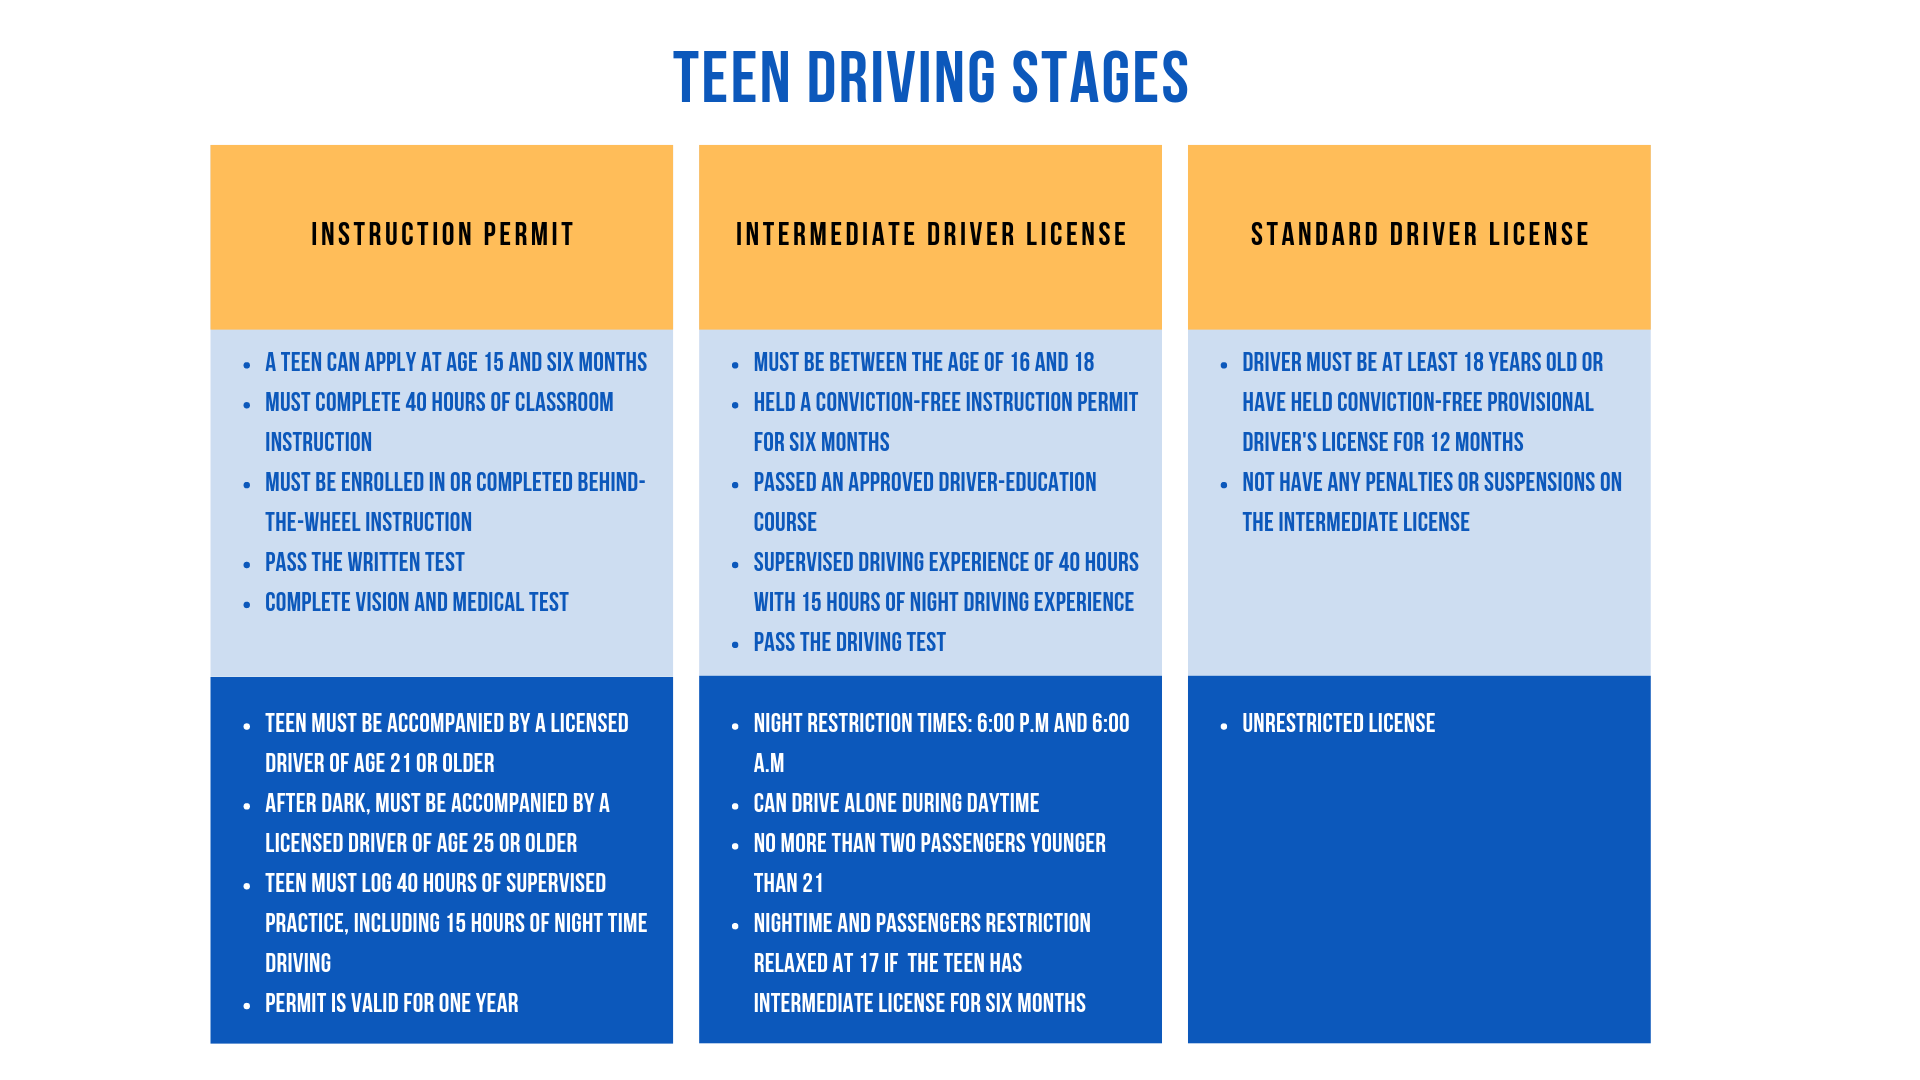 Teen Driving Stages in South Carolina